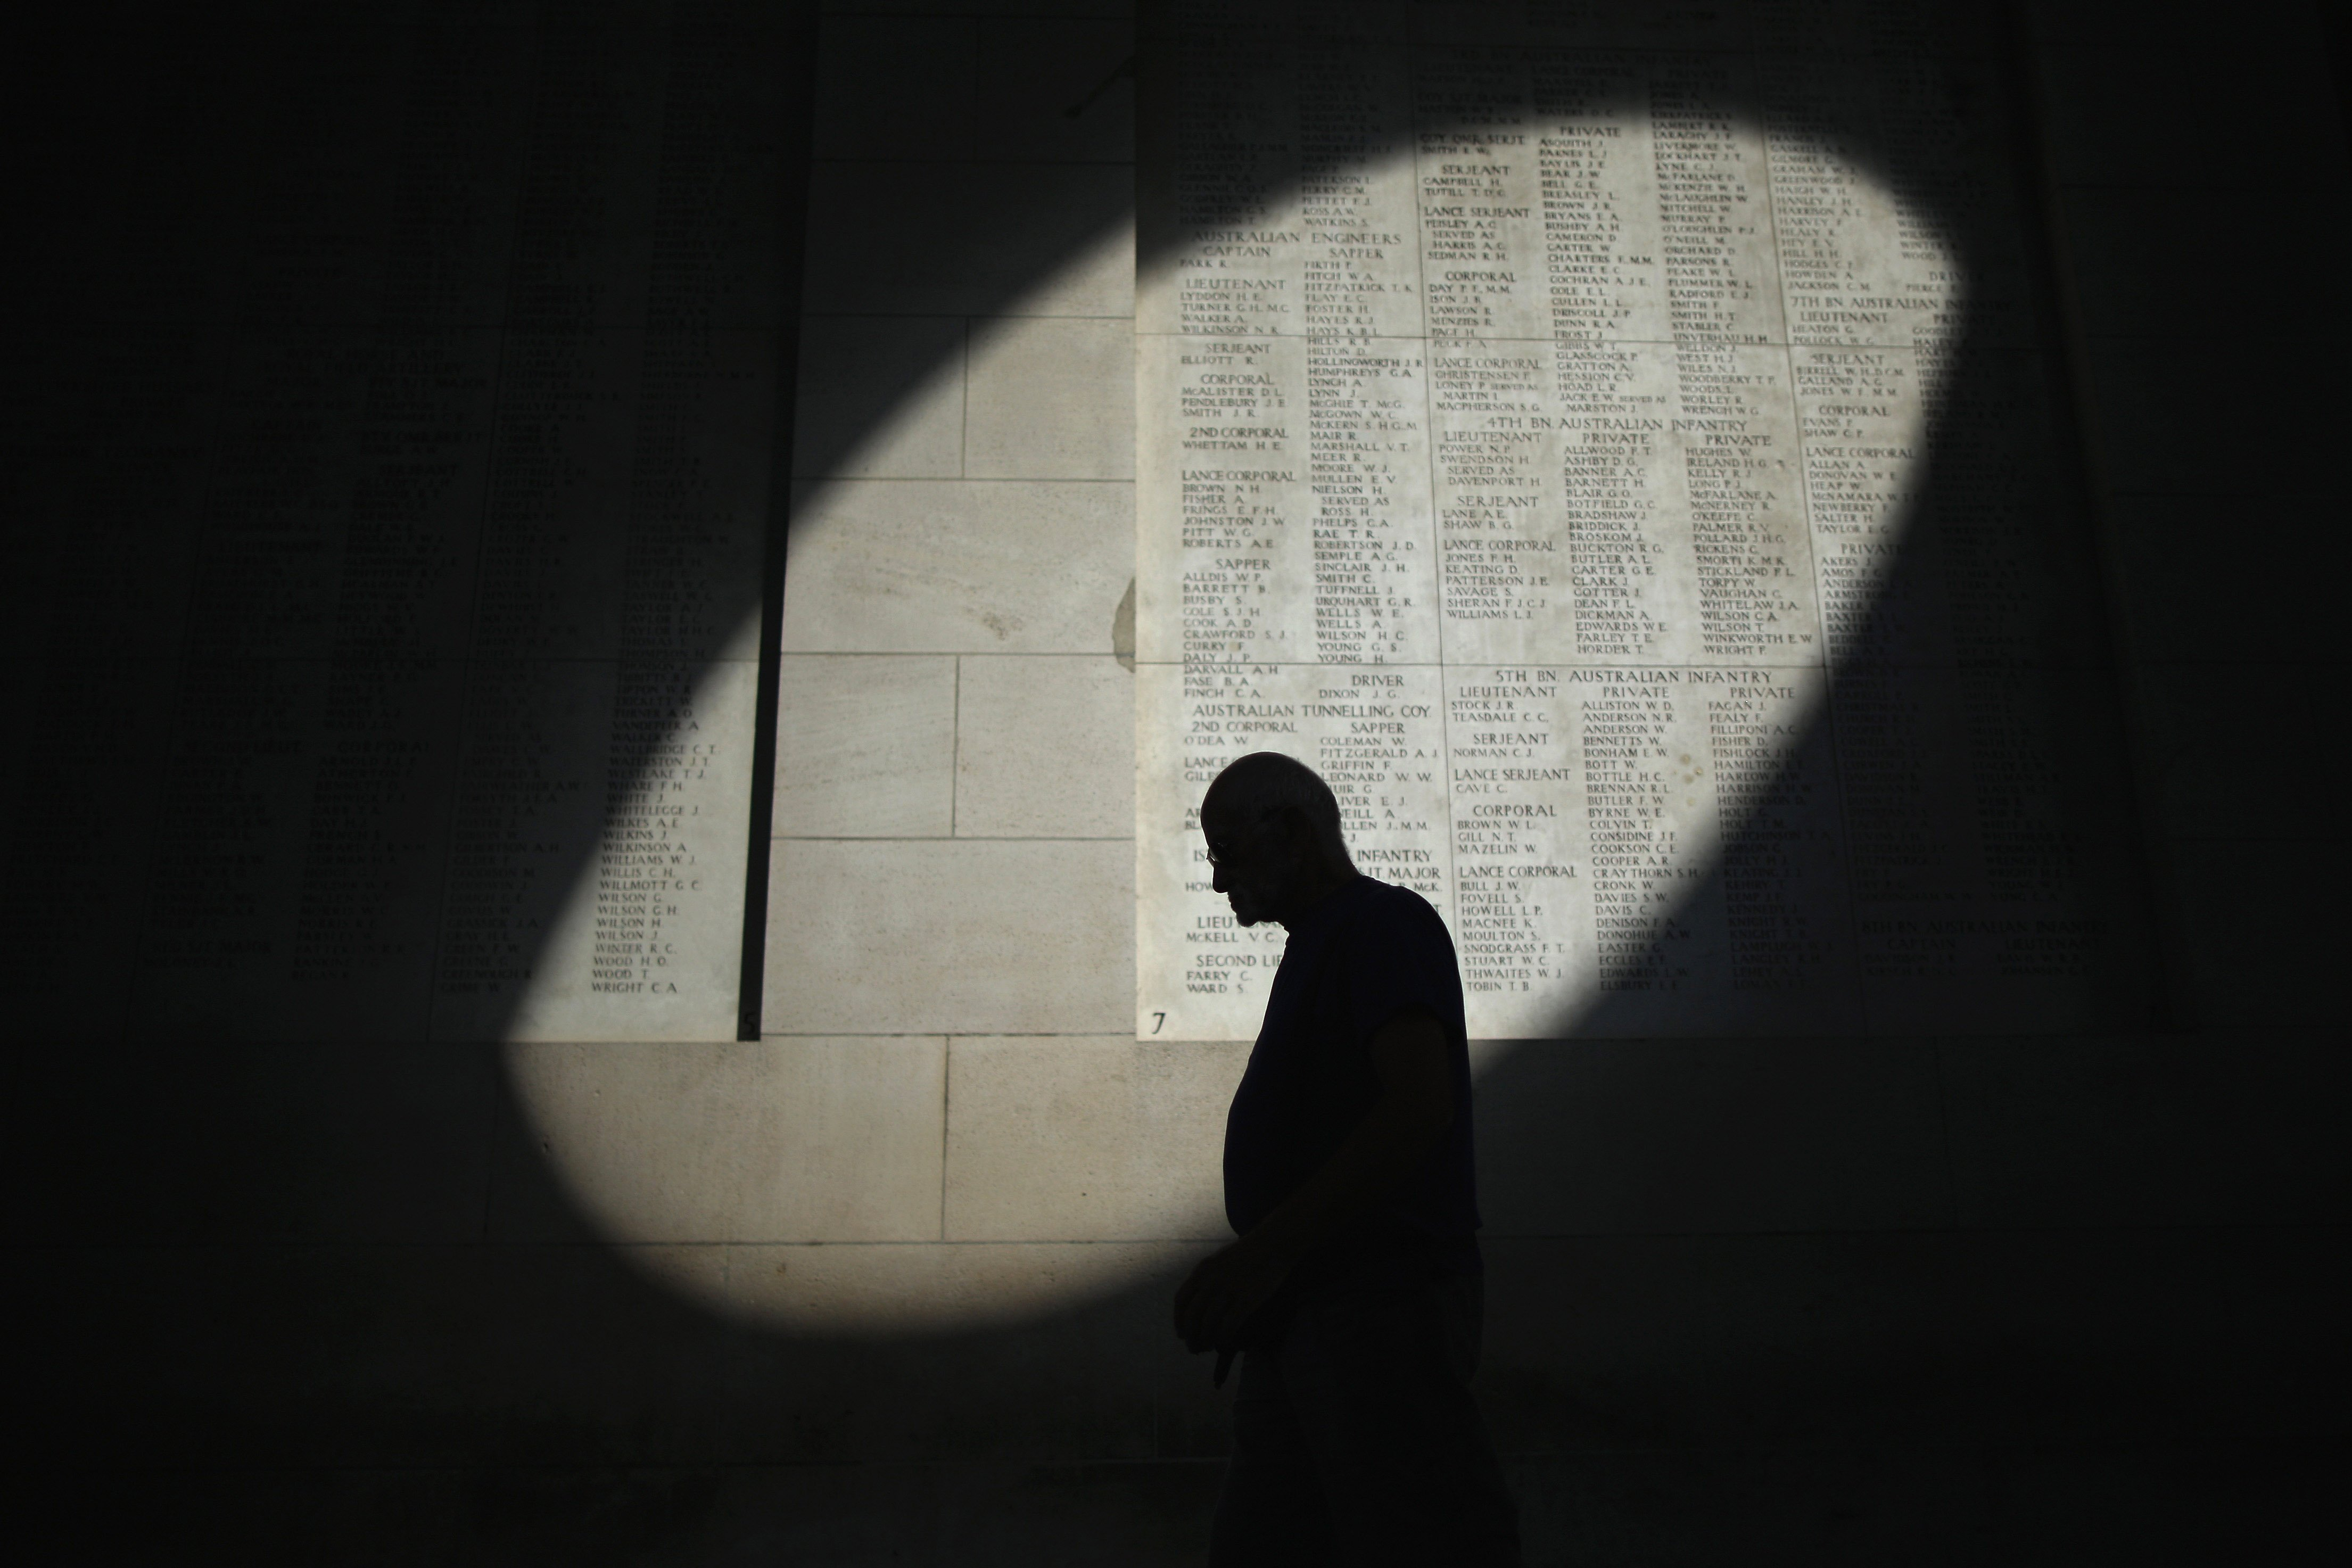 Aug. 4, 2014. A shaft of sunlight falls on the names of the missing at the Menin Gate Memorial on the centenary of the Great War in Ypres, Belgium.